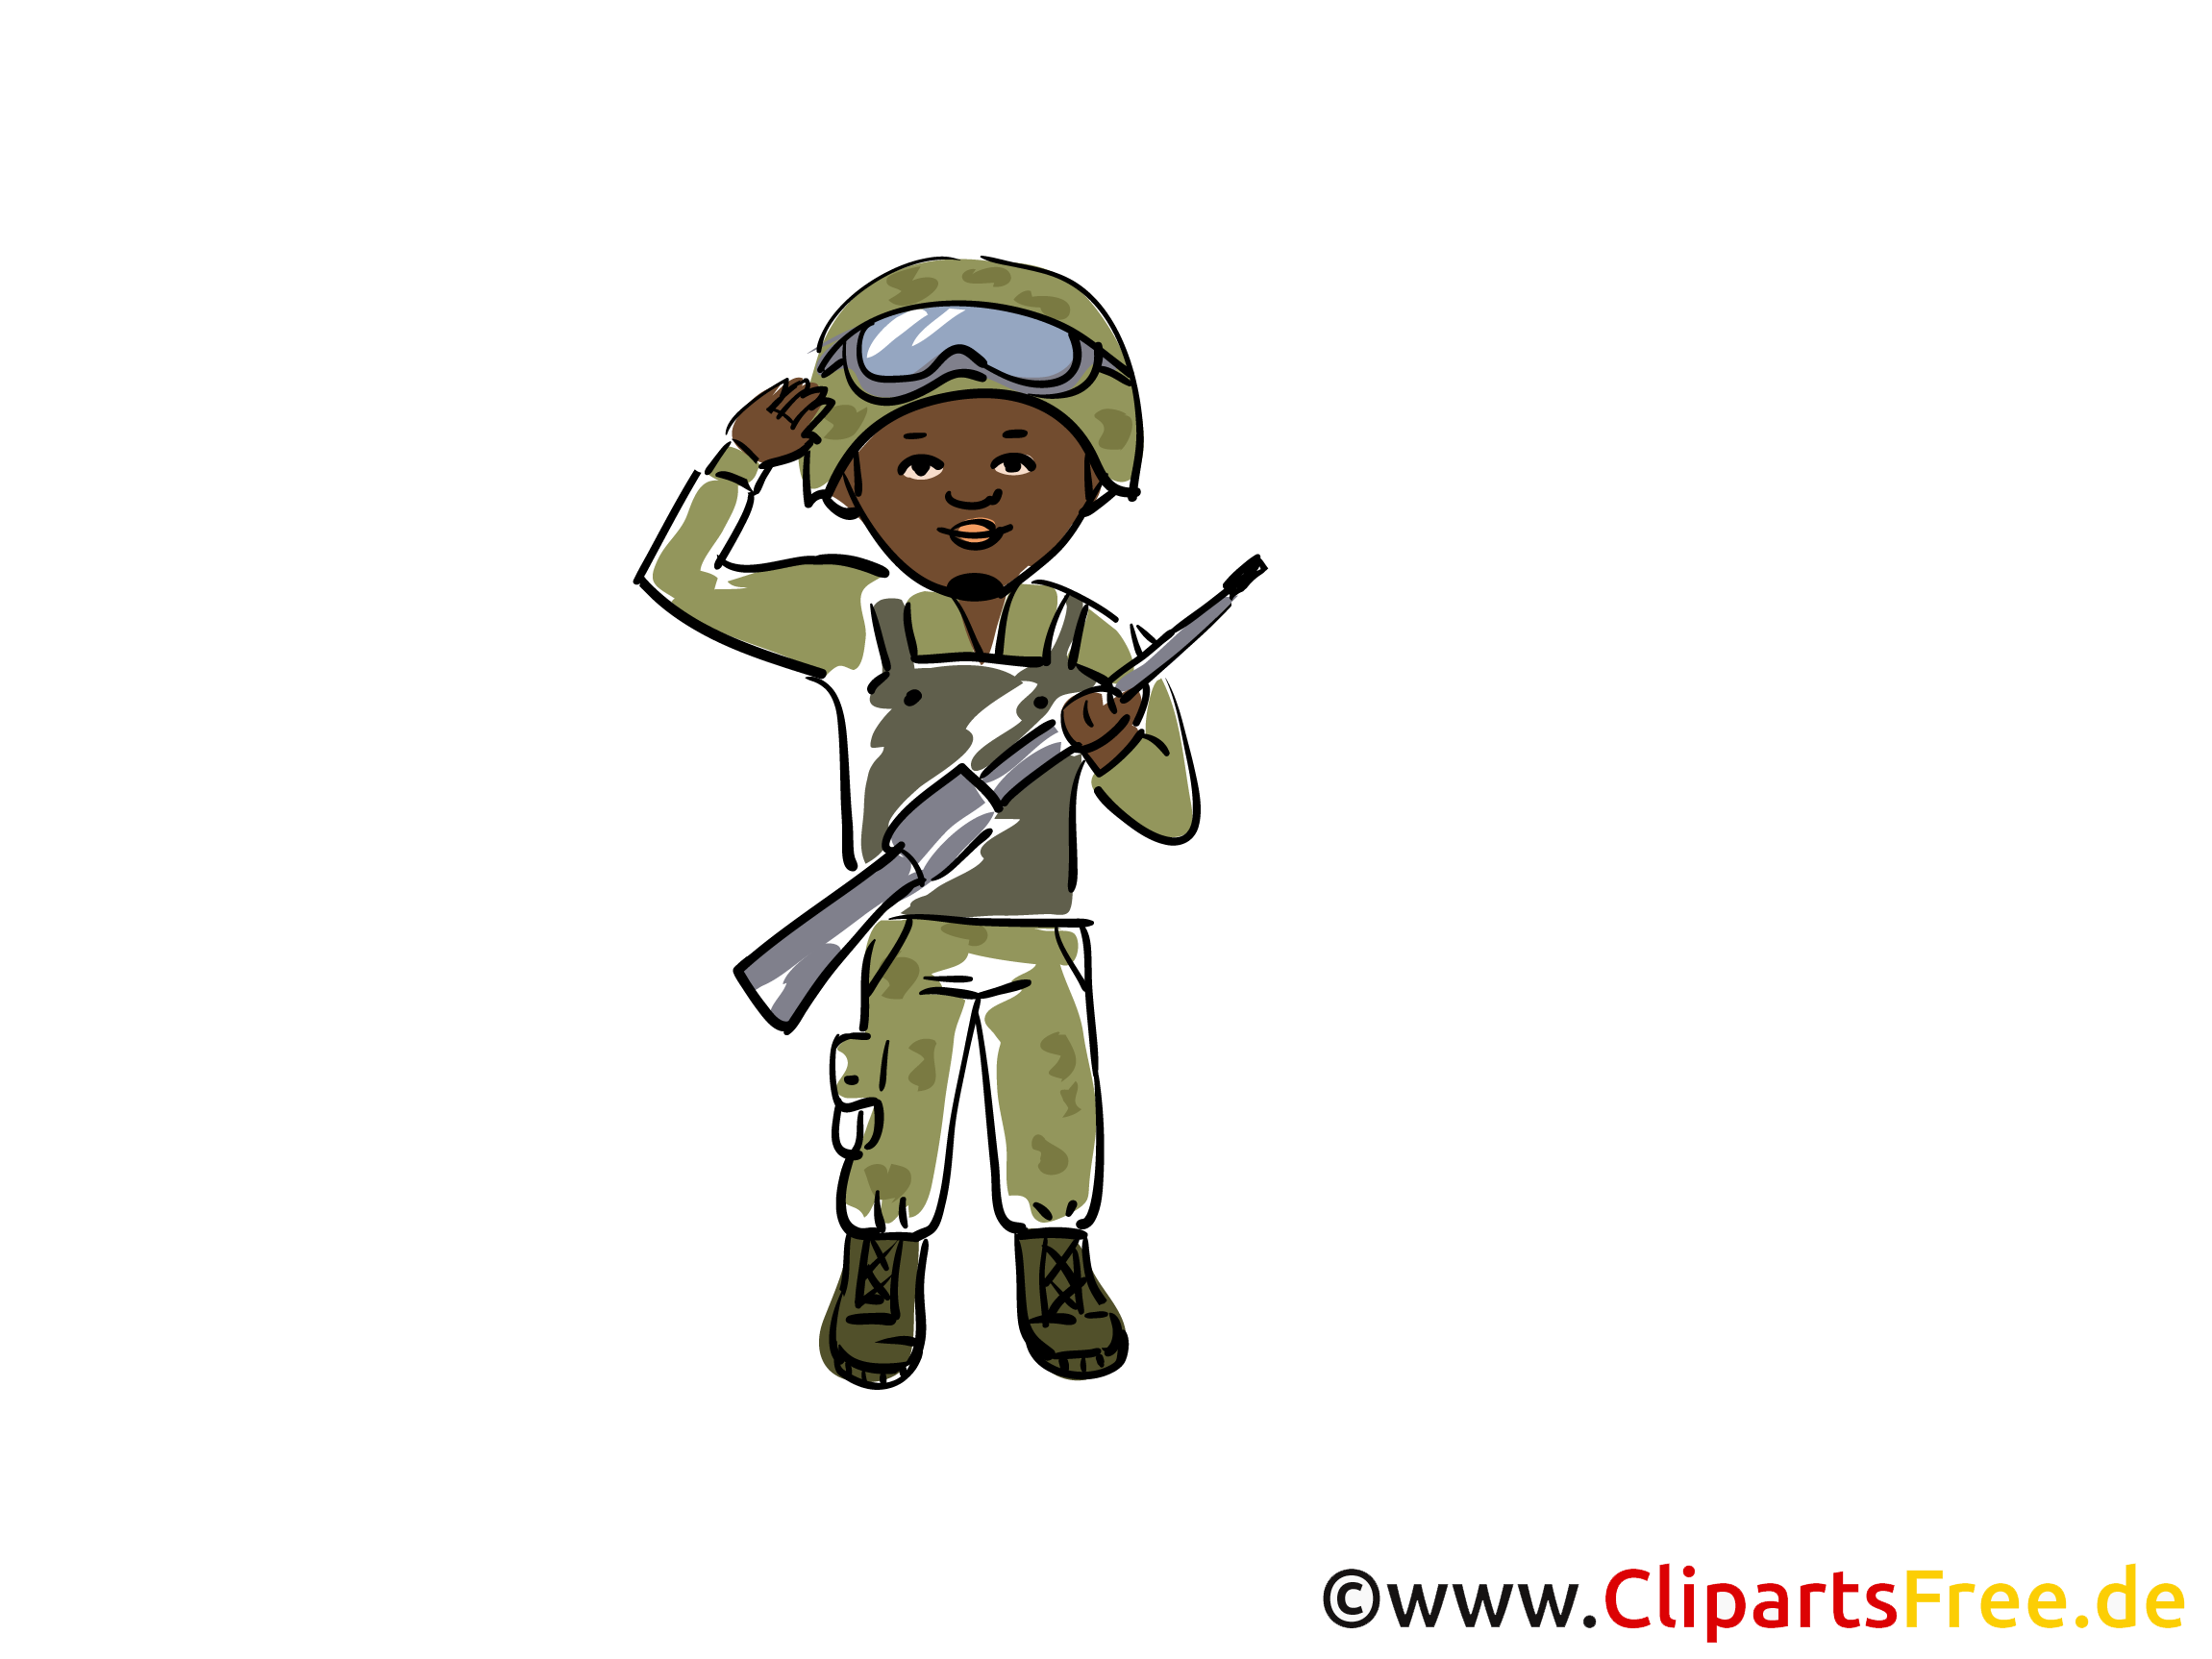 Free Military Clipart